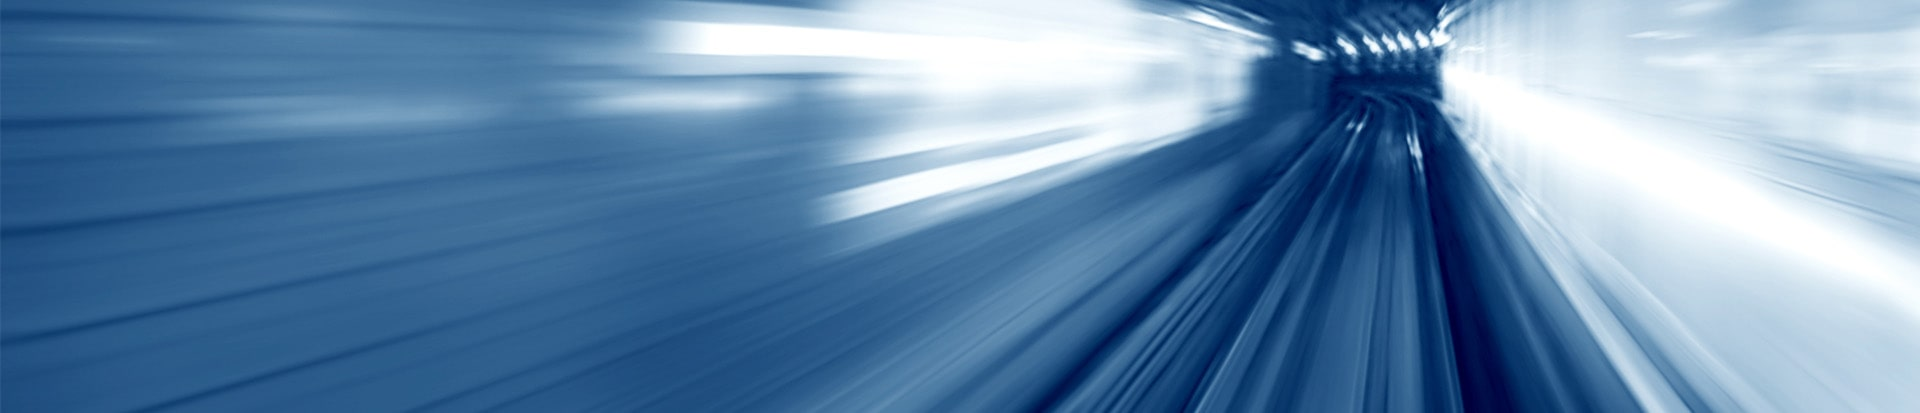 Speed of Relevance means outpacing threats with superior PNT capabilities